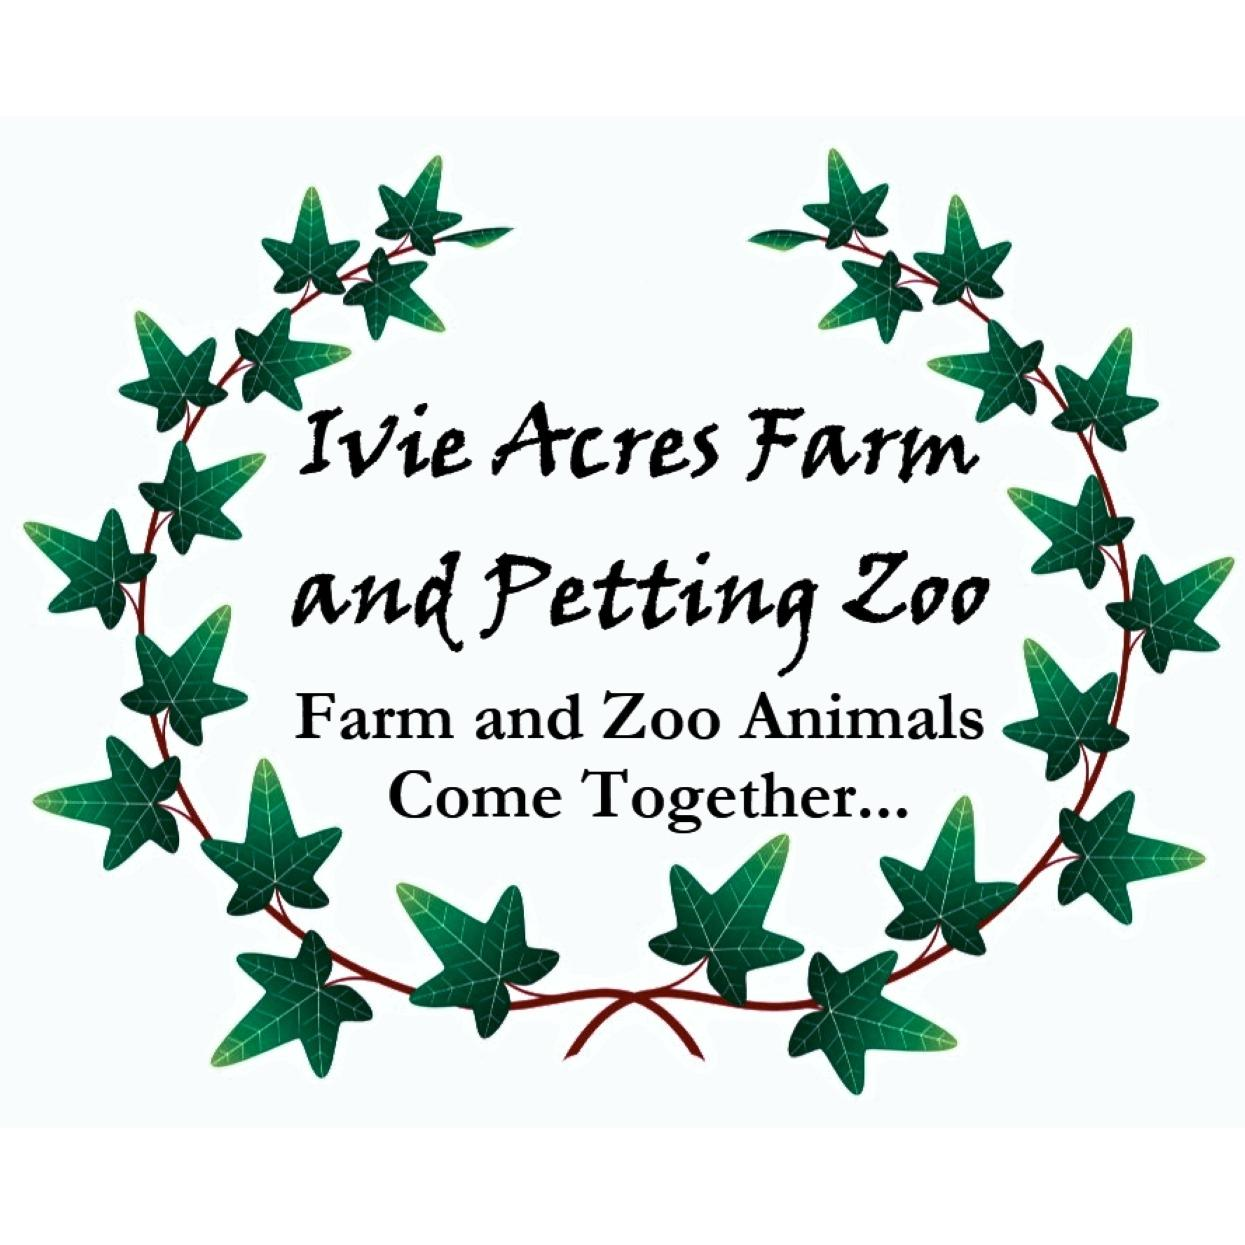 Ivie Acres Farm and Petting Zoo